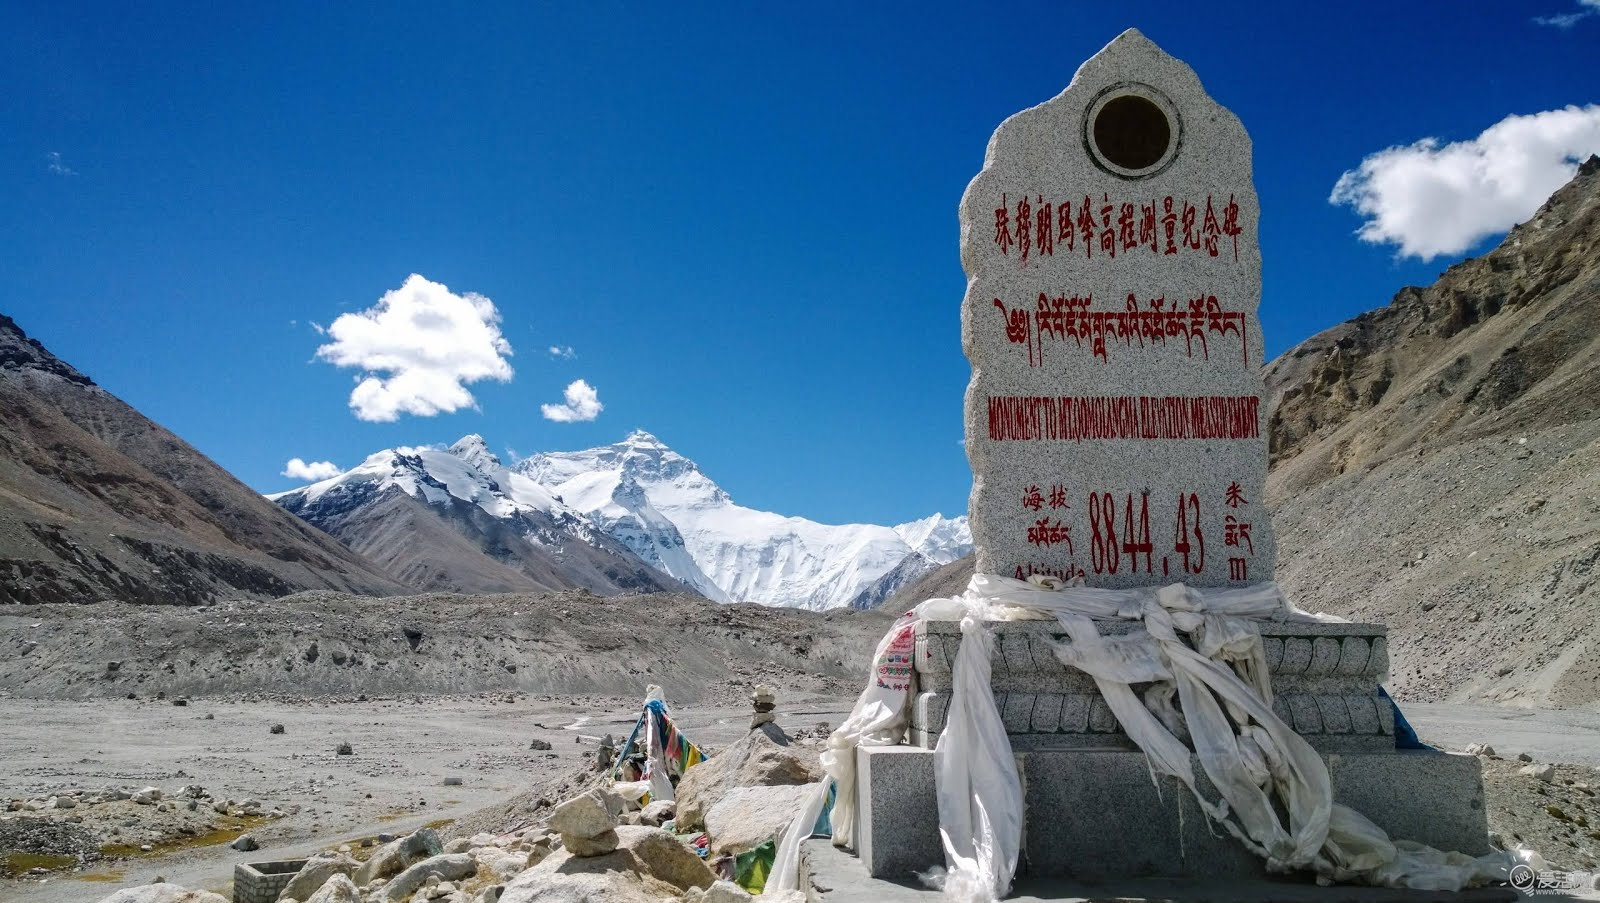 It says Everest base camp on an 8844.43 miters.